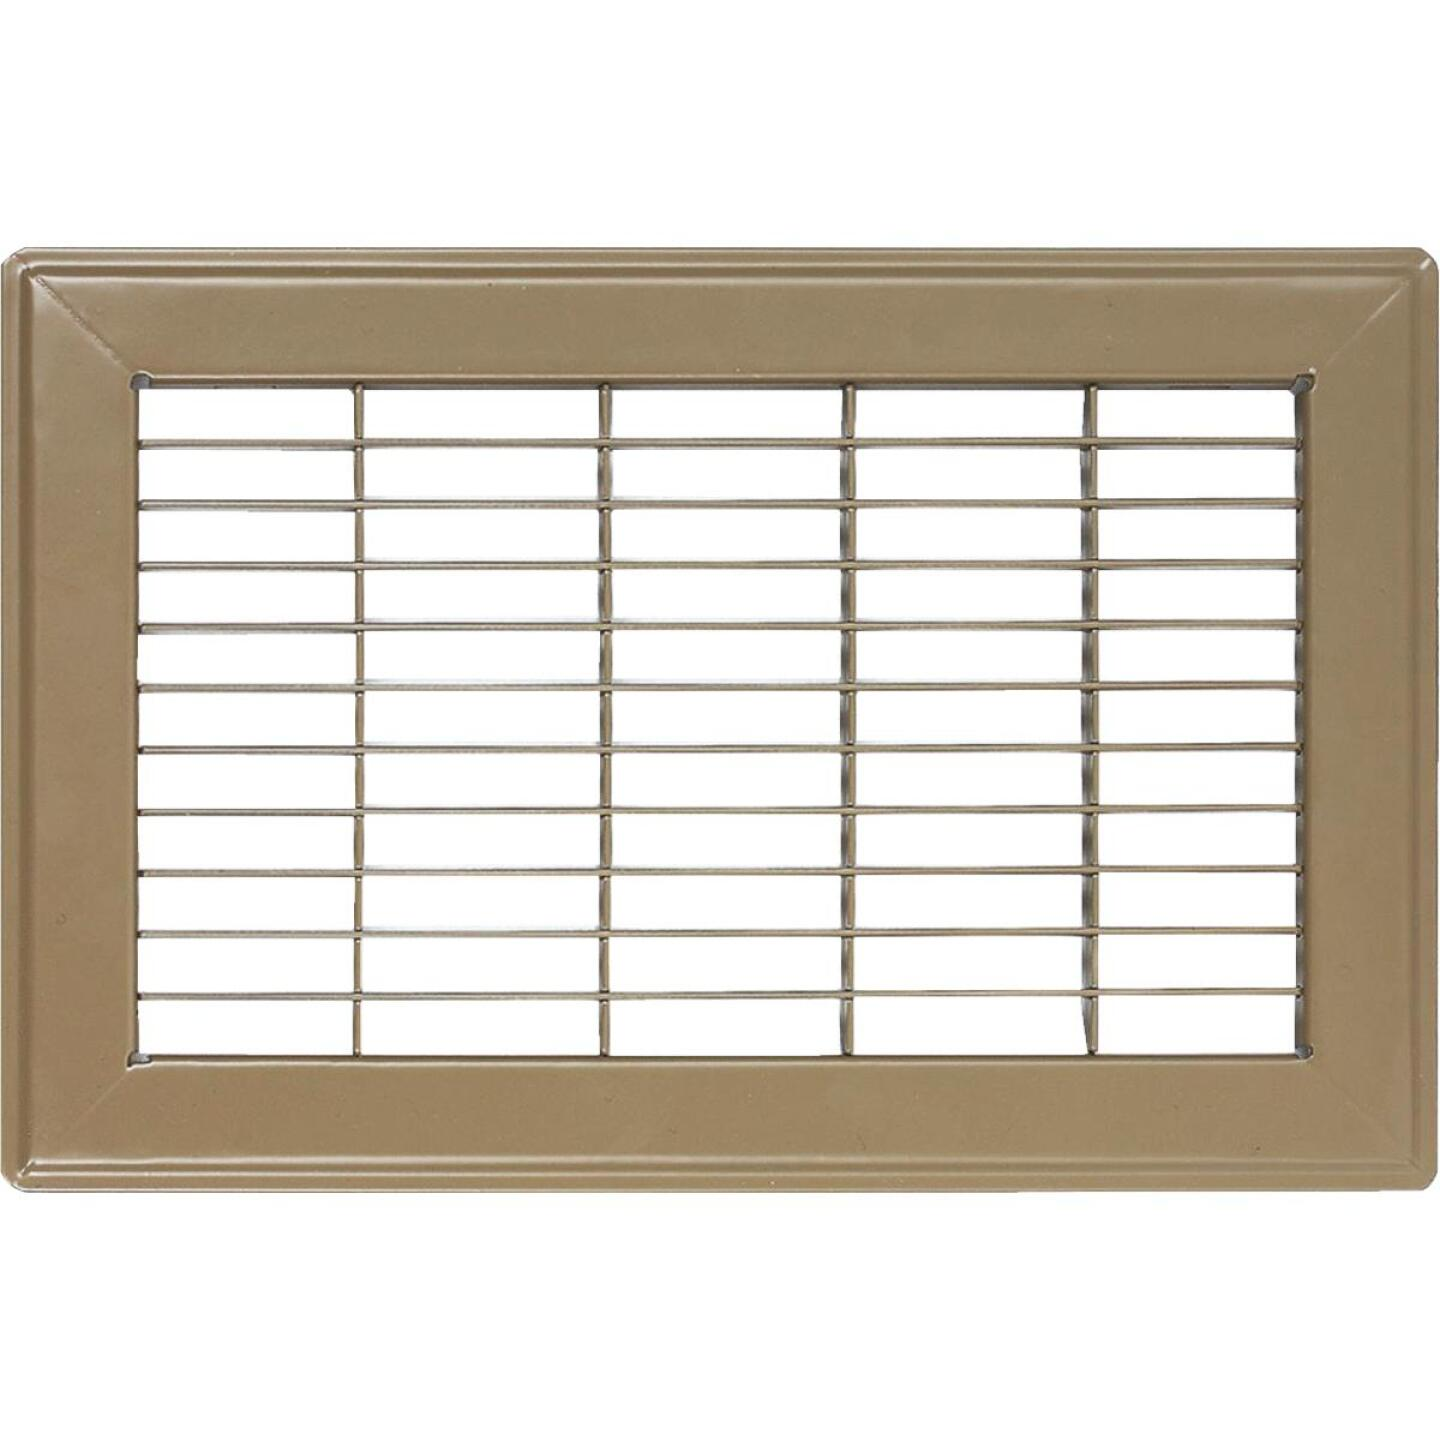 Accord 10 In. x 12 In. Brown Steel Floor Register Image 1